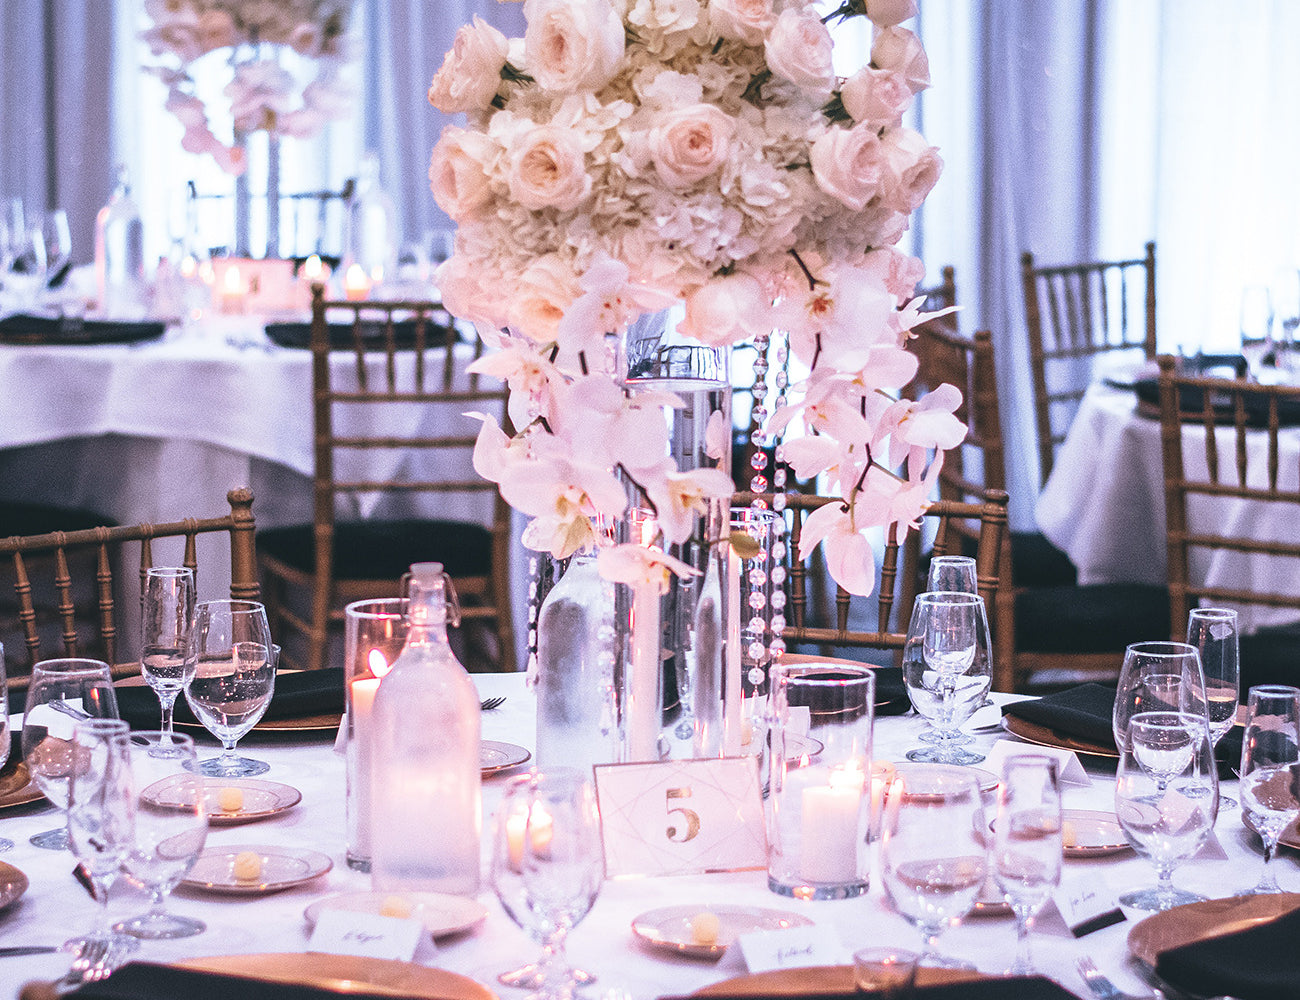 Dining table with a rose centrepiece in a banquet hall